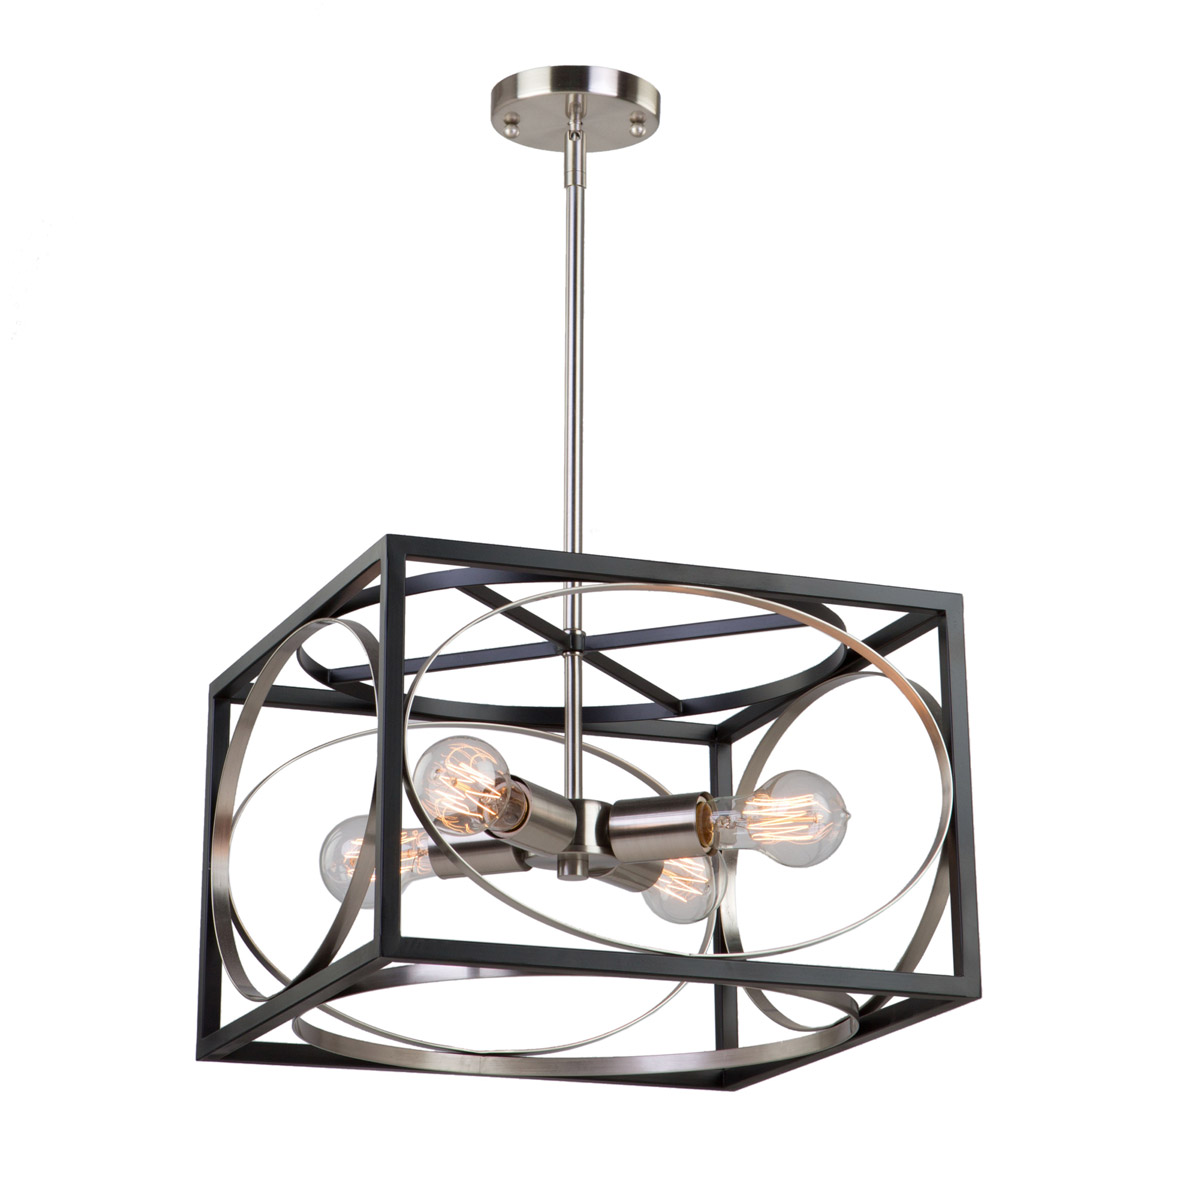 Chandeliers 4 Light Bulb Fixture With Black And Polished